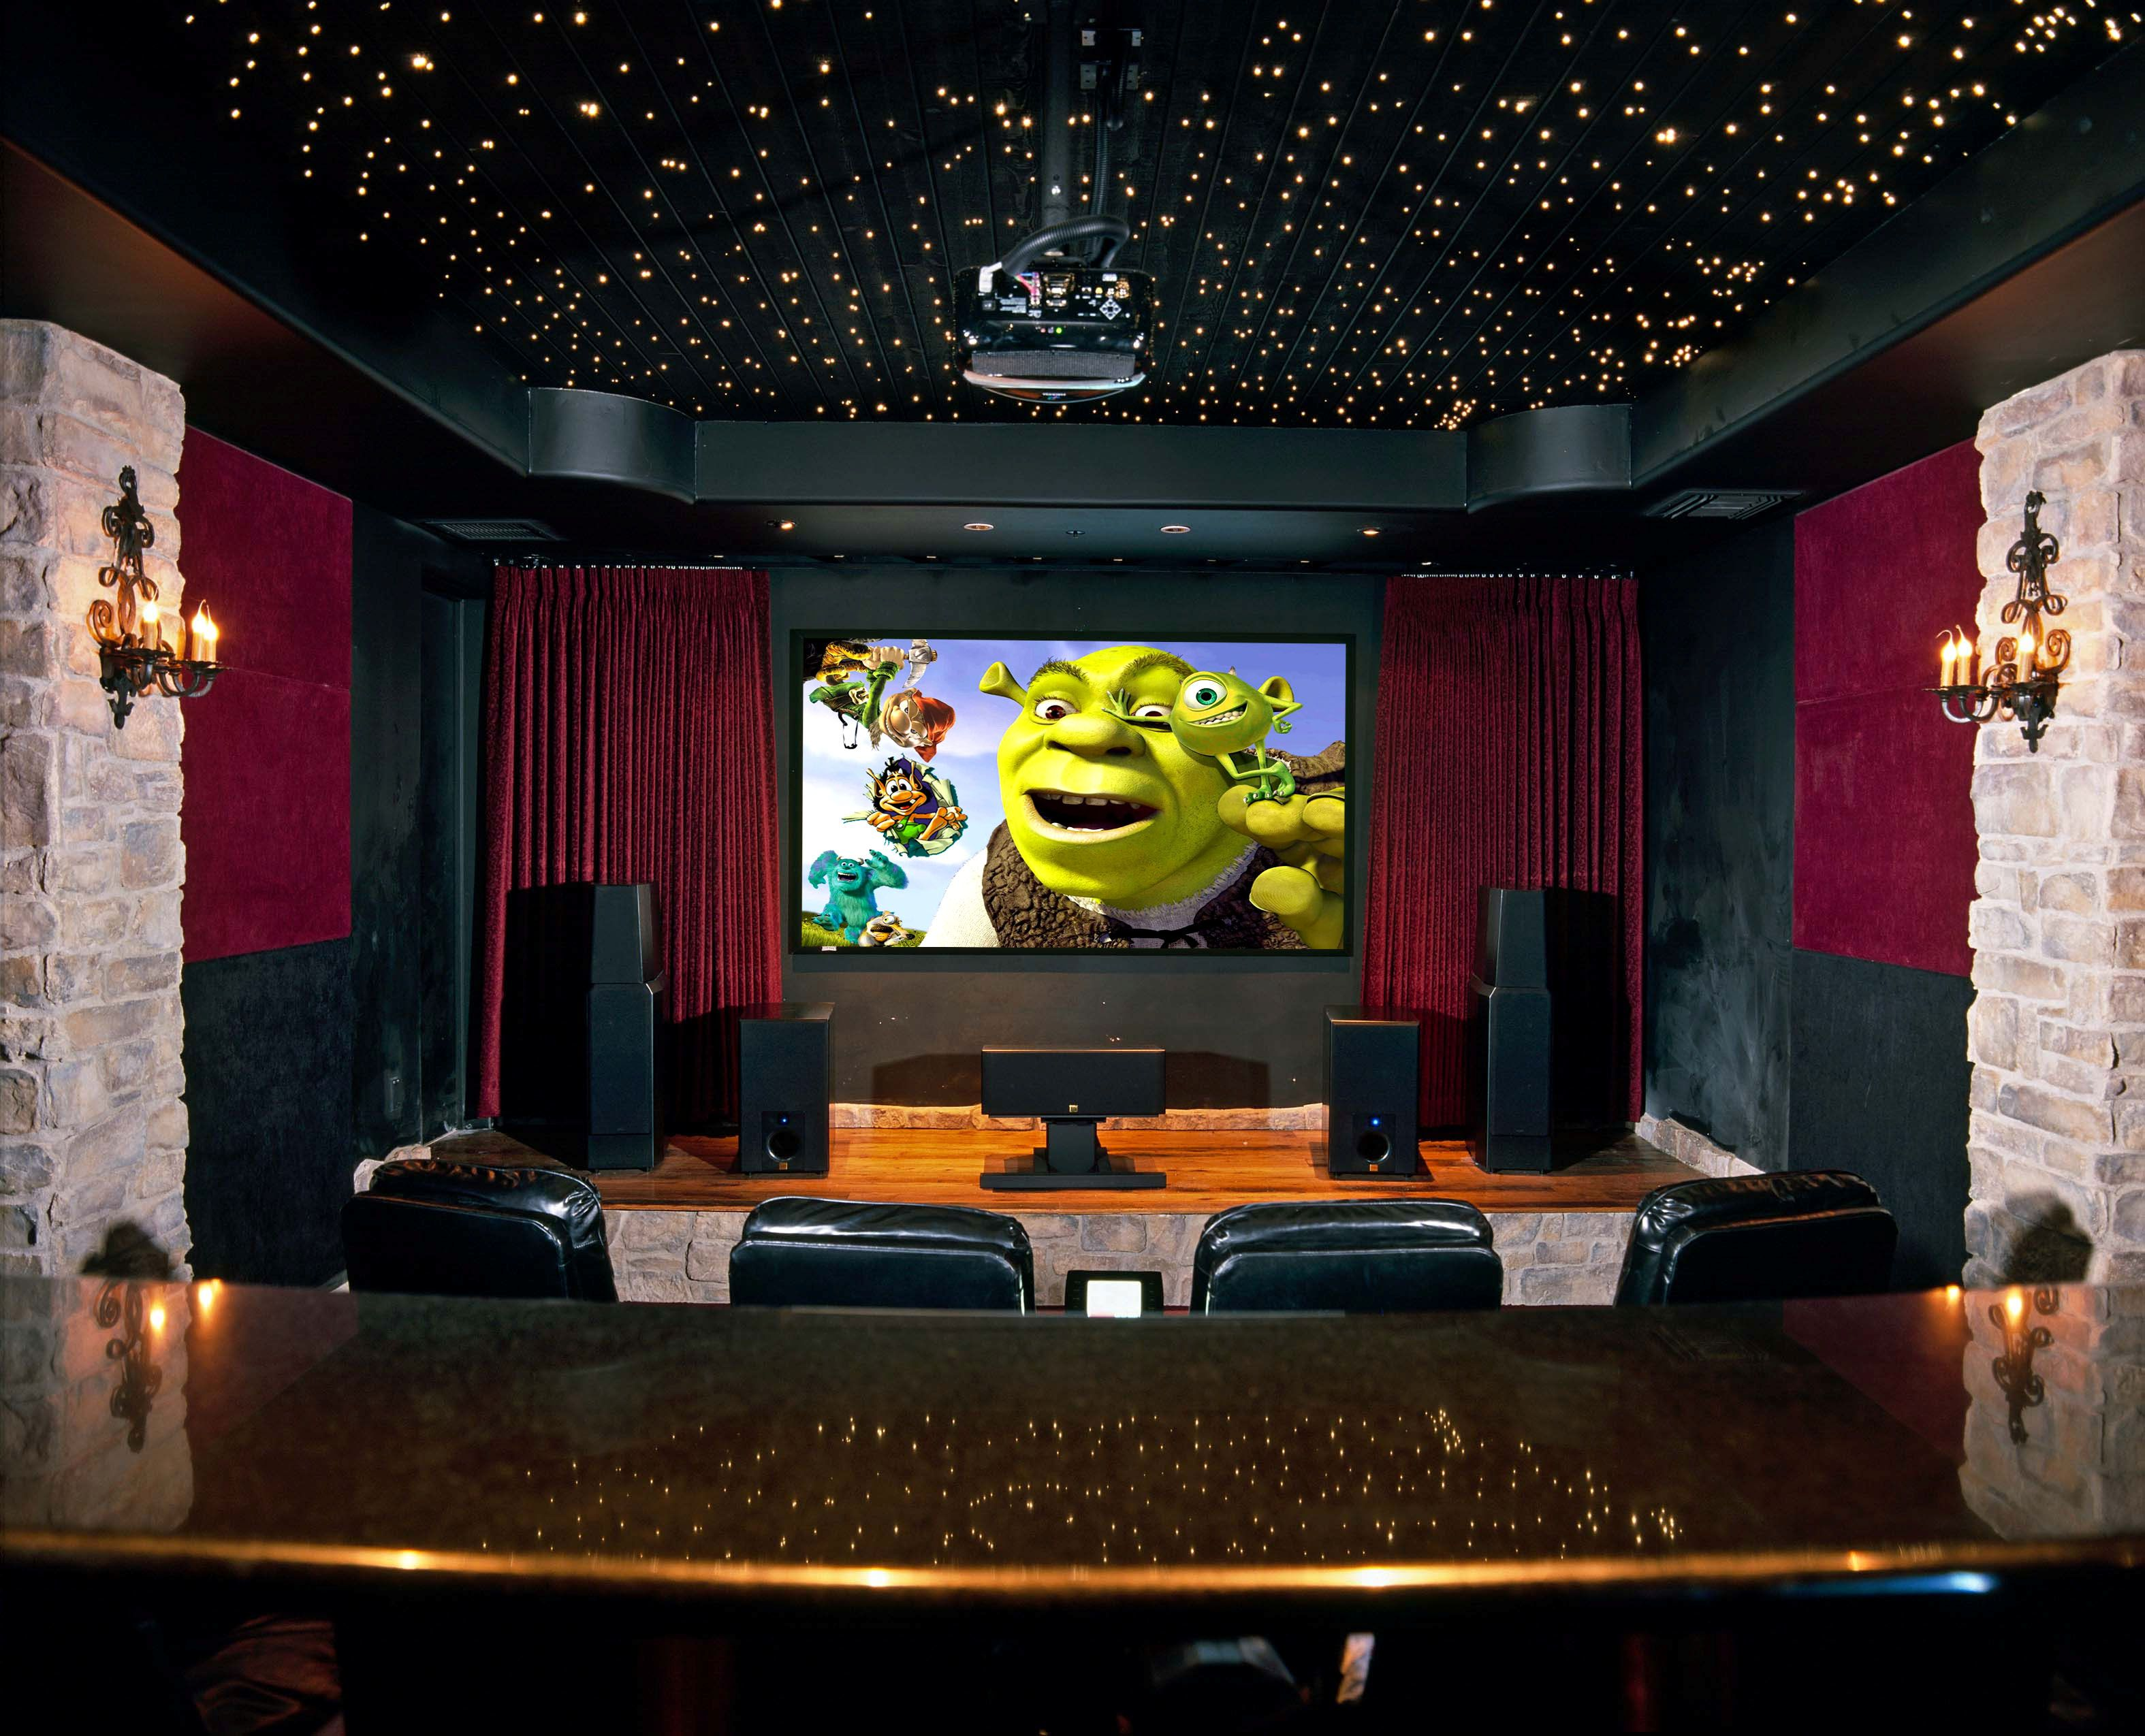 decorating beautiful home theater room with ceiling design full of home theater designs ideas - Home Theater Room Design Ideas